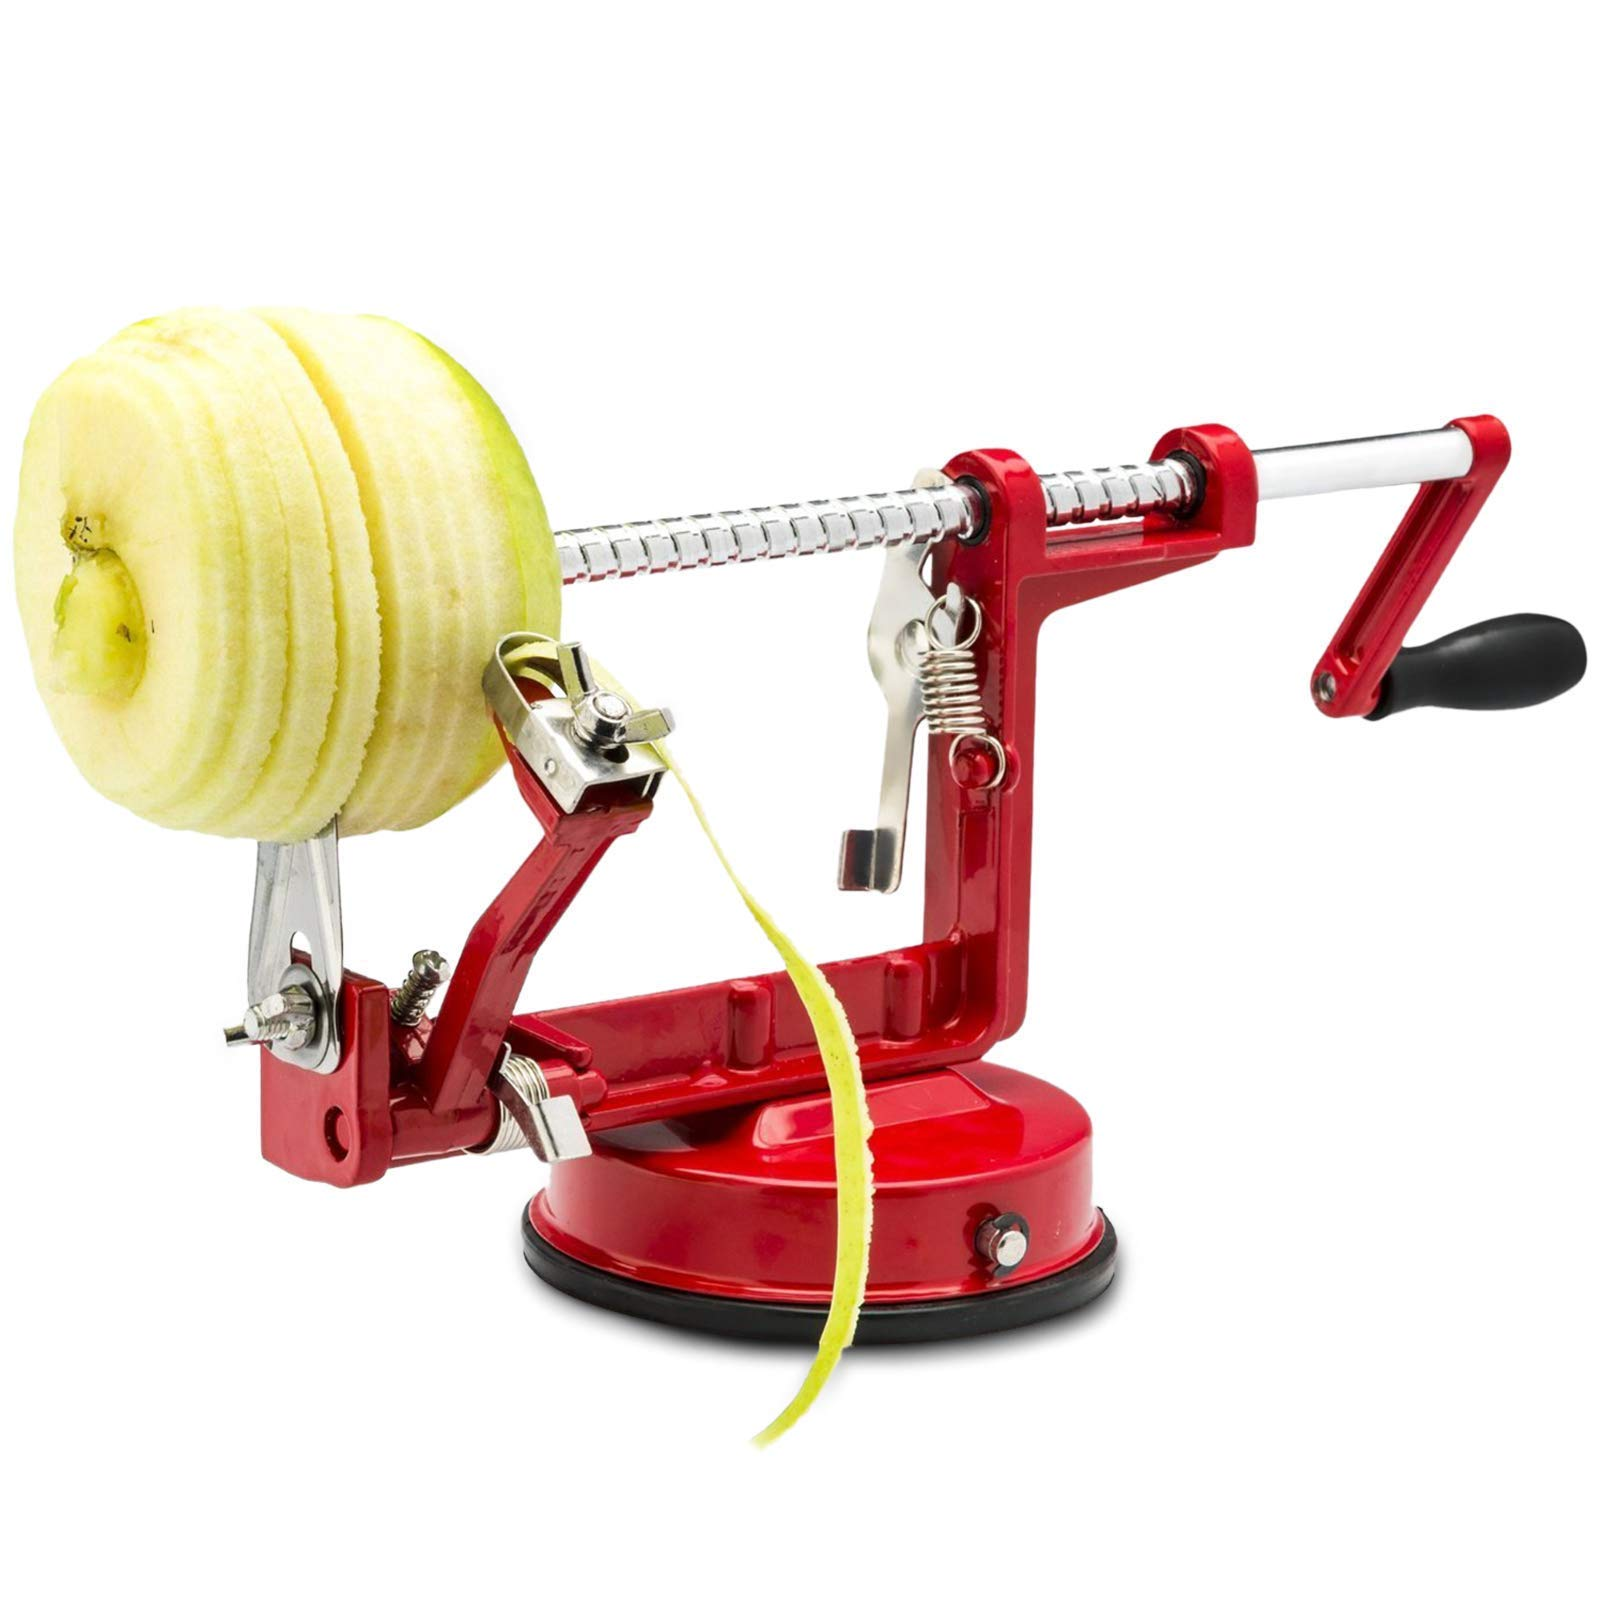 RXXM Apple Peeler Slicer Corer 3 in 1 Stainless Steel Blades Suction Grips Base Heavy Duty Durable Hand-cranking Apple/Pear/Potato Peelers Fruit/Vegetable Salad Apple Pie Tools for Kitchen, Red